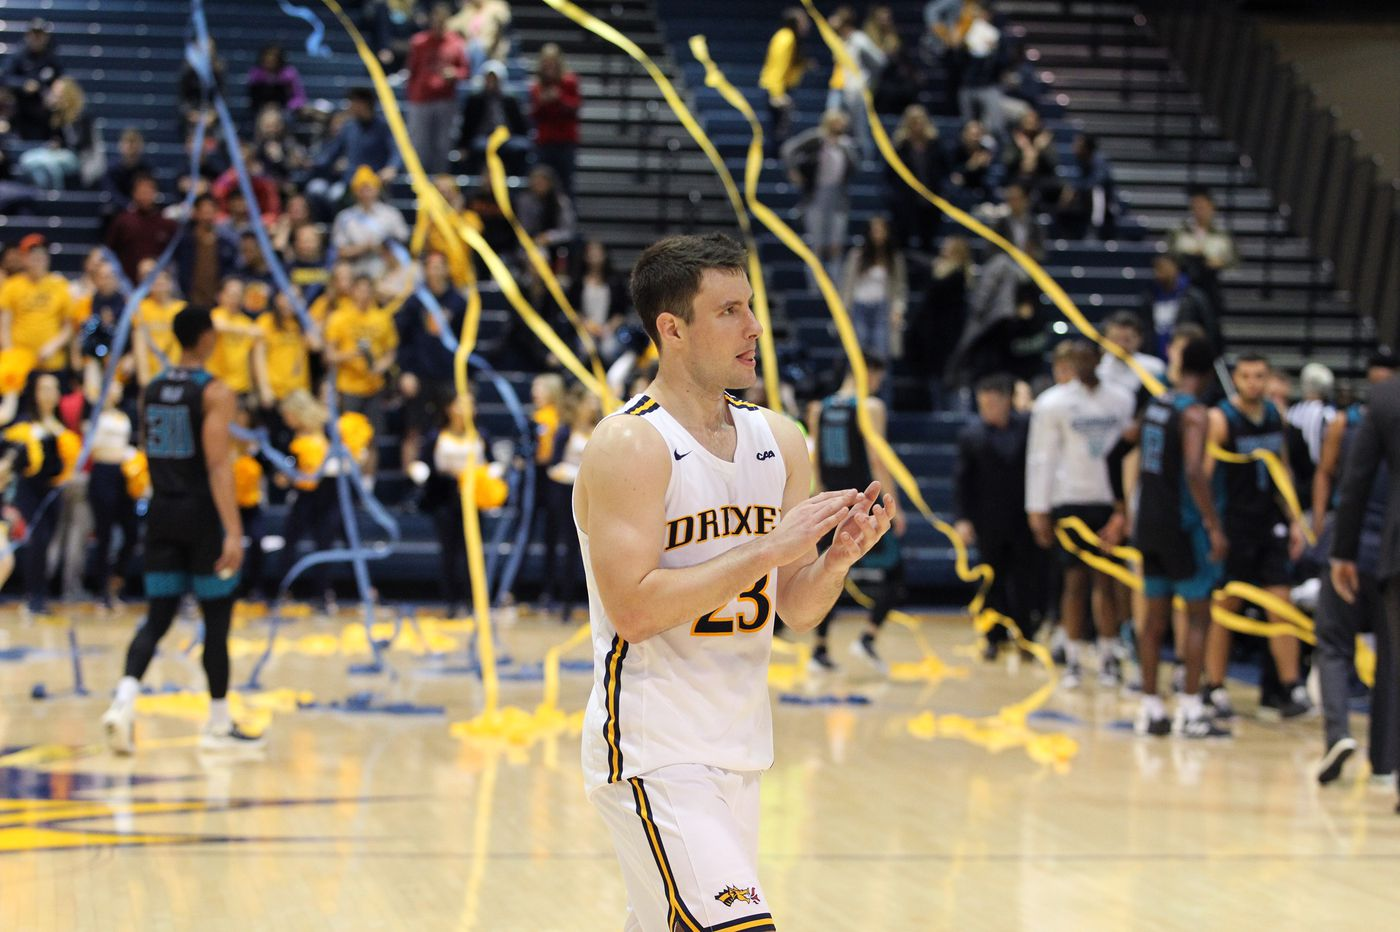 Sharpshooter Trevor John is making the most of his opportunity after transferring to Drexel